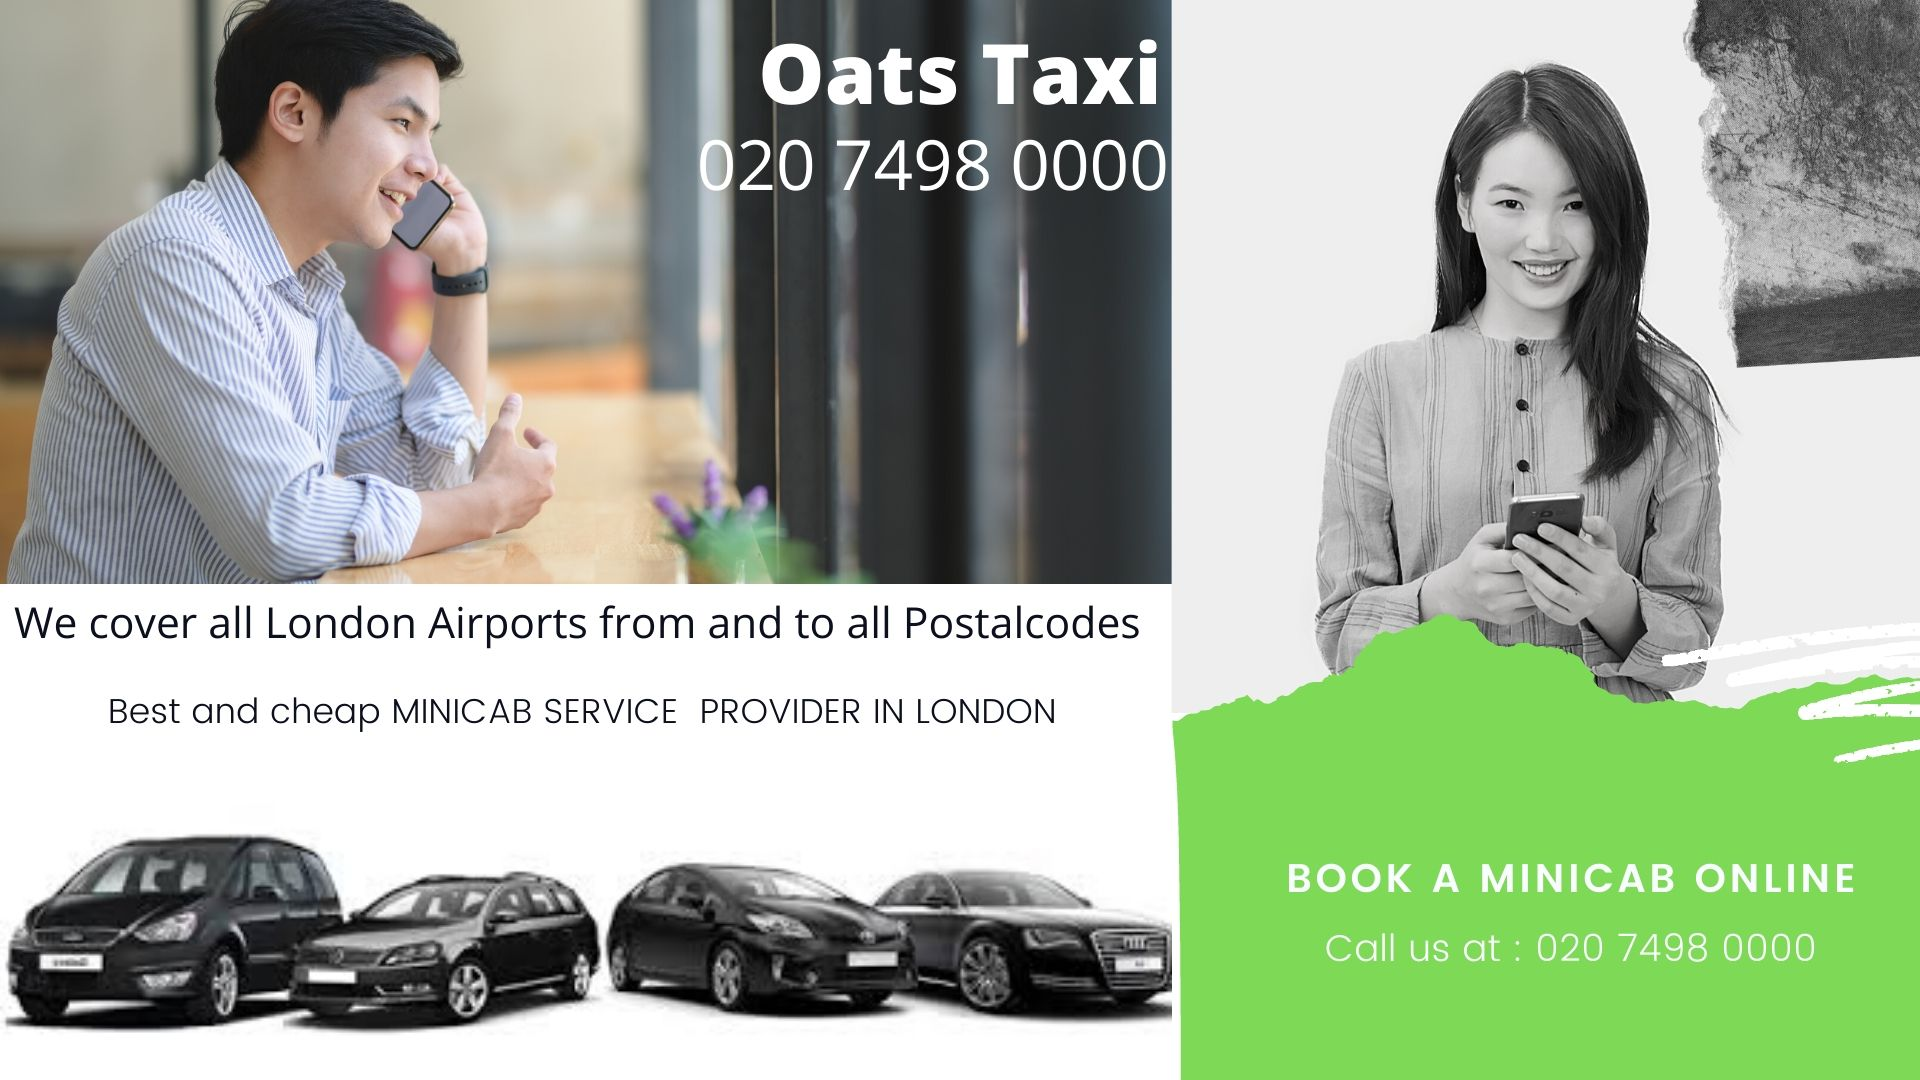 Nearest Taxi Office in Clapham Junction | Nearest Taxi Office in Gatwick Airport | Call now : 02074980000